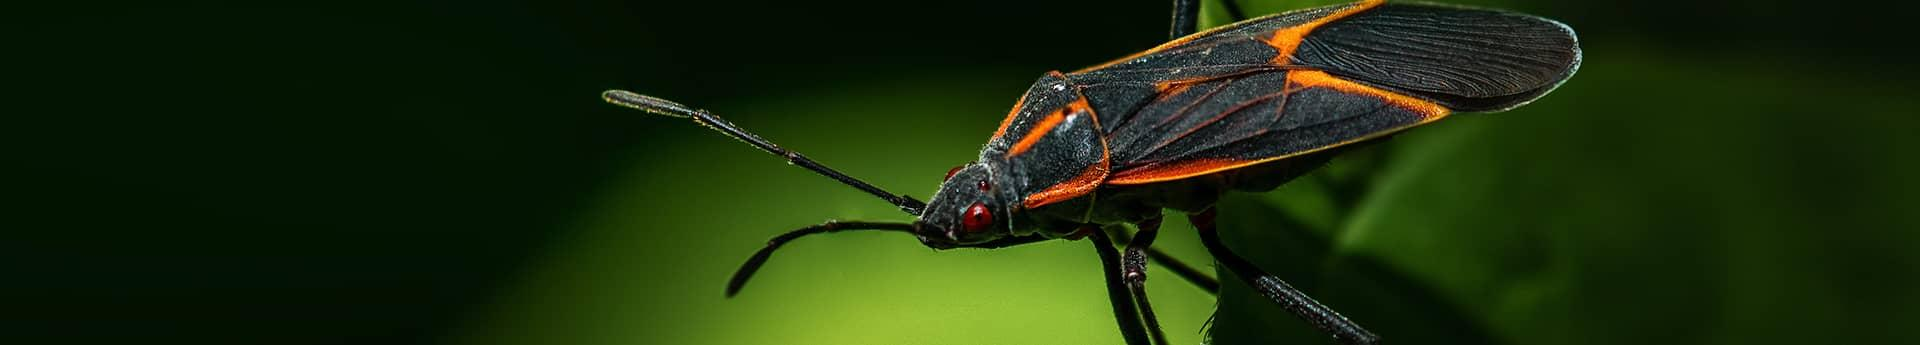 boxelder bug up close